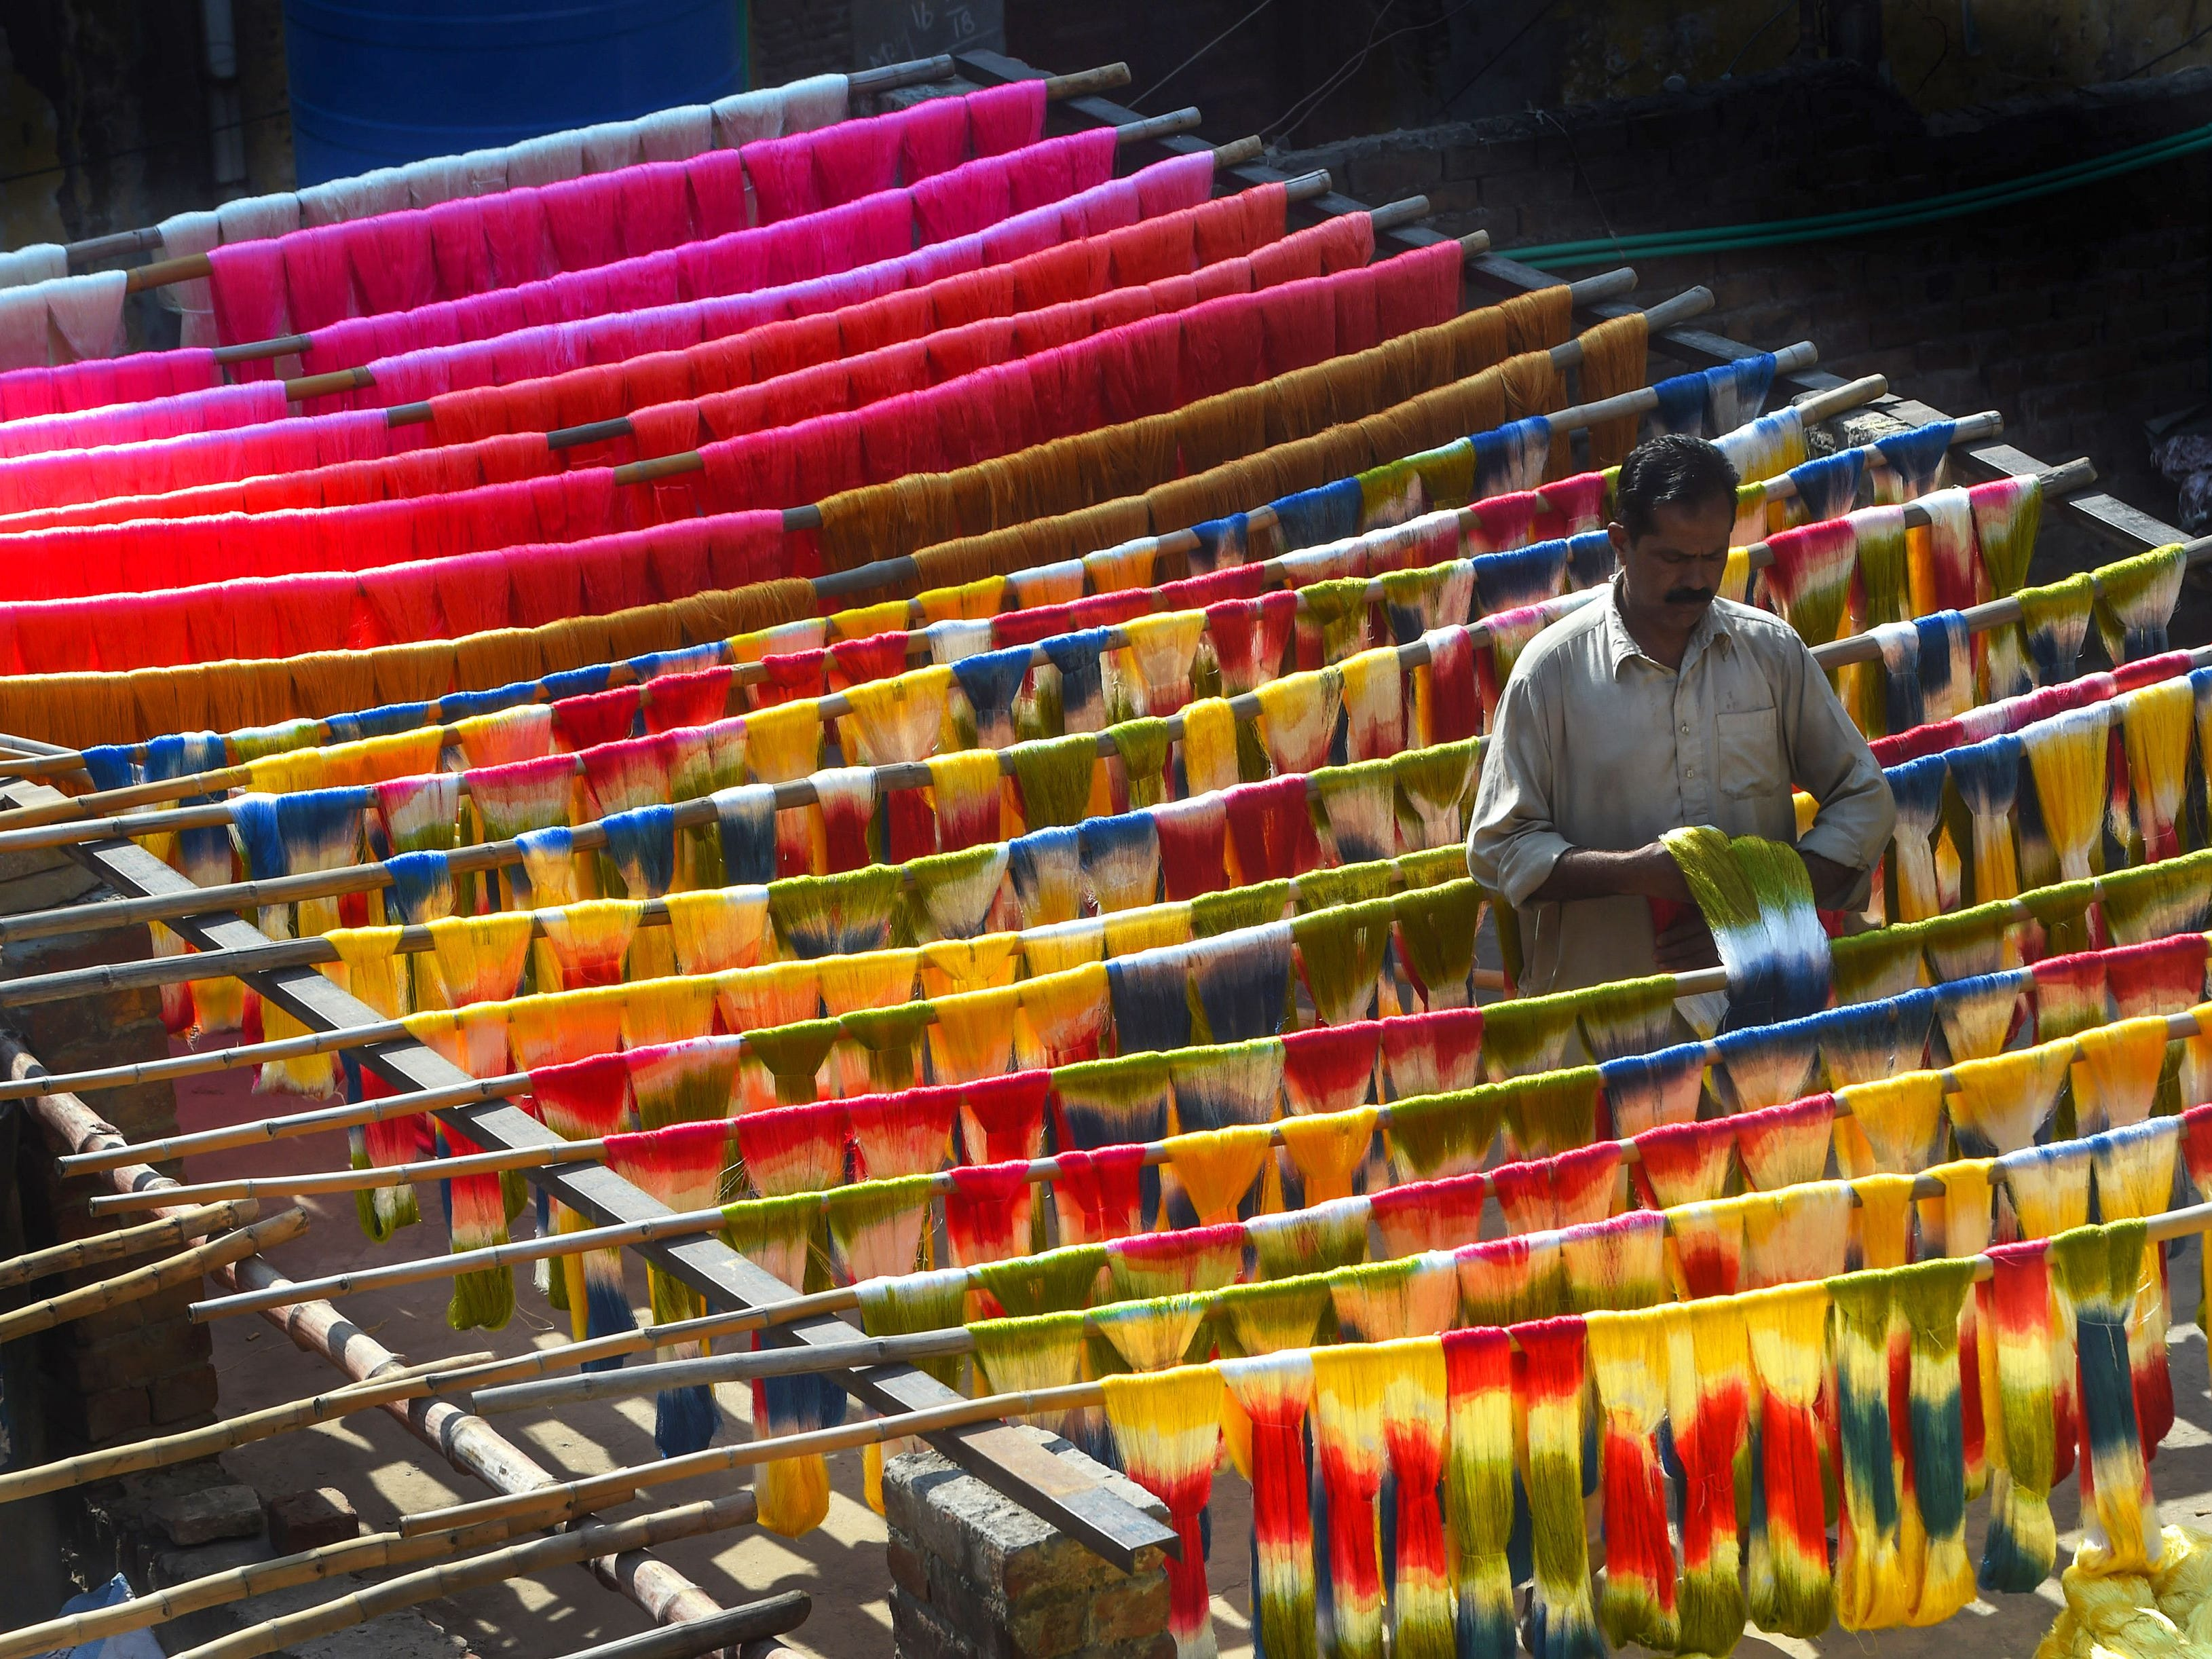 A Pakistani worker dries fabric threads after dyeing them at a factory in Lahore on Feb. 11, 2019.